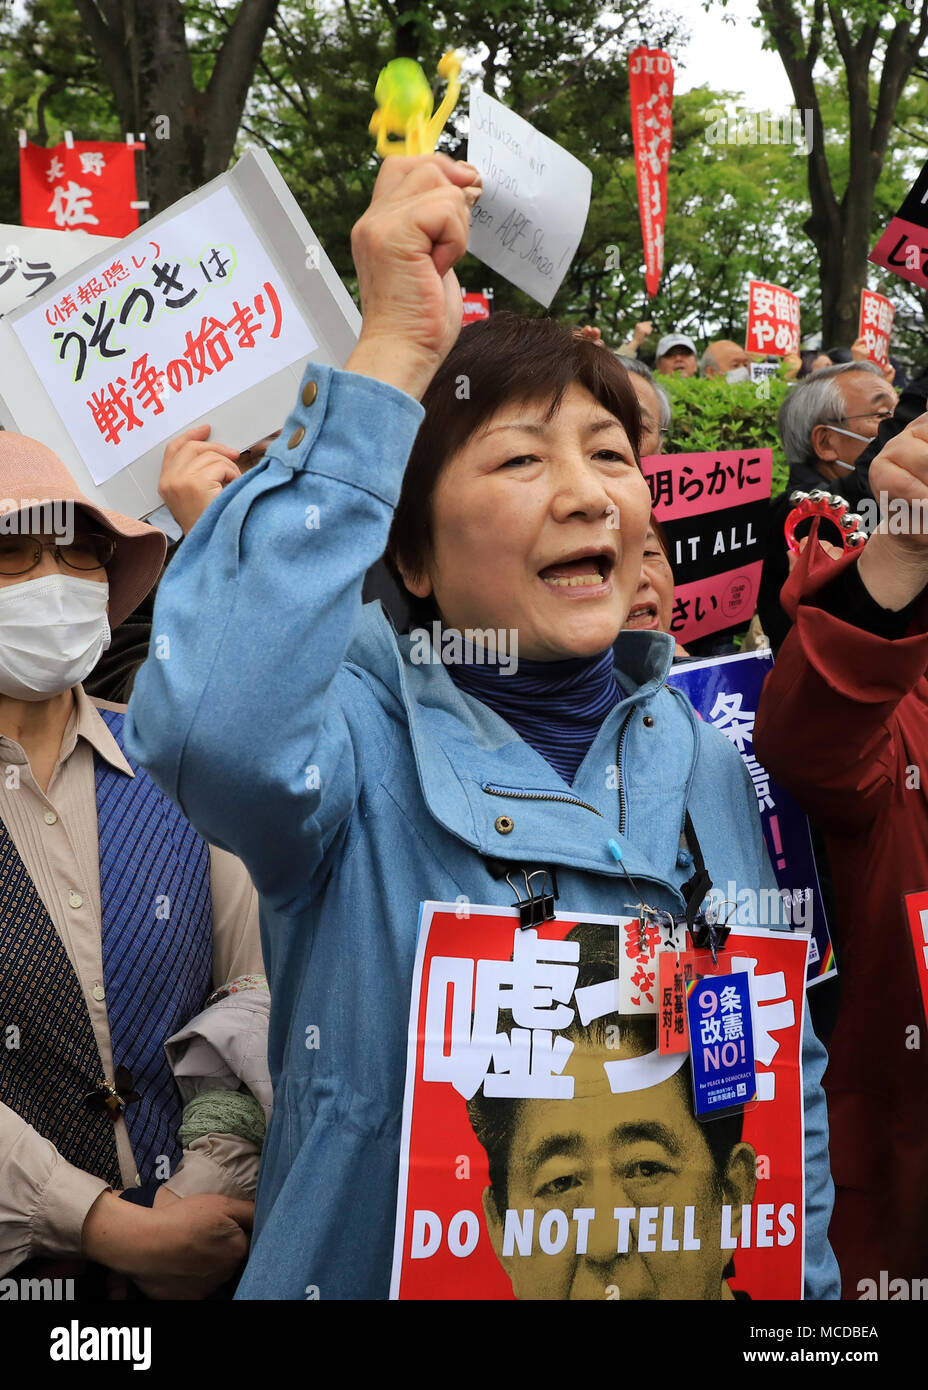 Tokyo, Japan. 14th Apr, 2018. Protestors hold placards to protest against Abe cabinet at a rally in front of the National Diet in Tokyo on Saturday, April 14, 2018. Tens of thousands people gathered to demand resignation of Prime Minister Shinzo Abe for the Moritomo and Kake scandals. Credit: Yoshio Tsunoda/AFLO/Alamy Live News - Stock Image